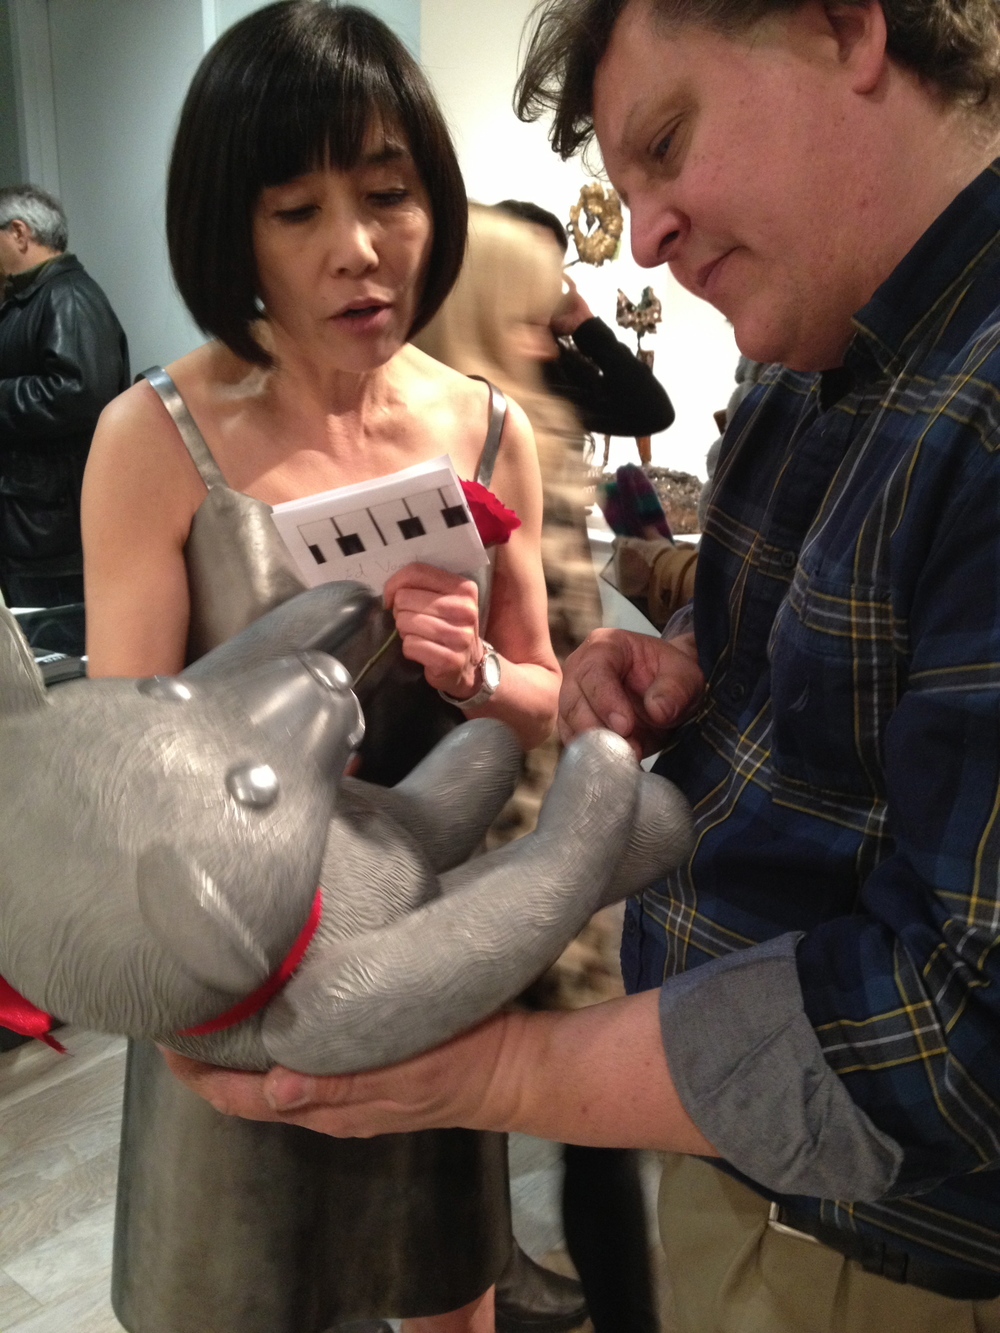 Mayumi Amada and Kyle Fokken discuss the construction of Mayumi's bear.